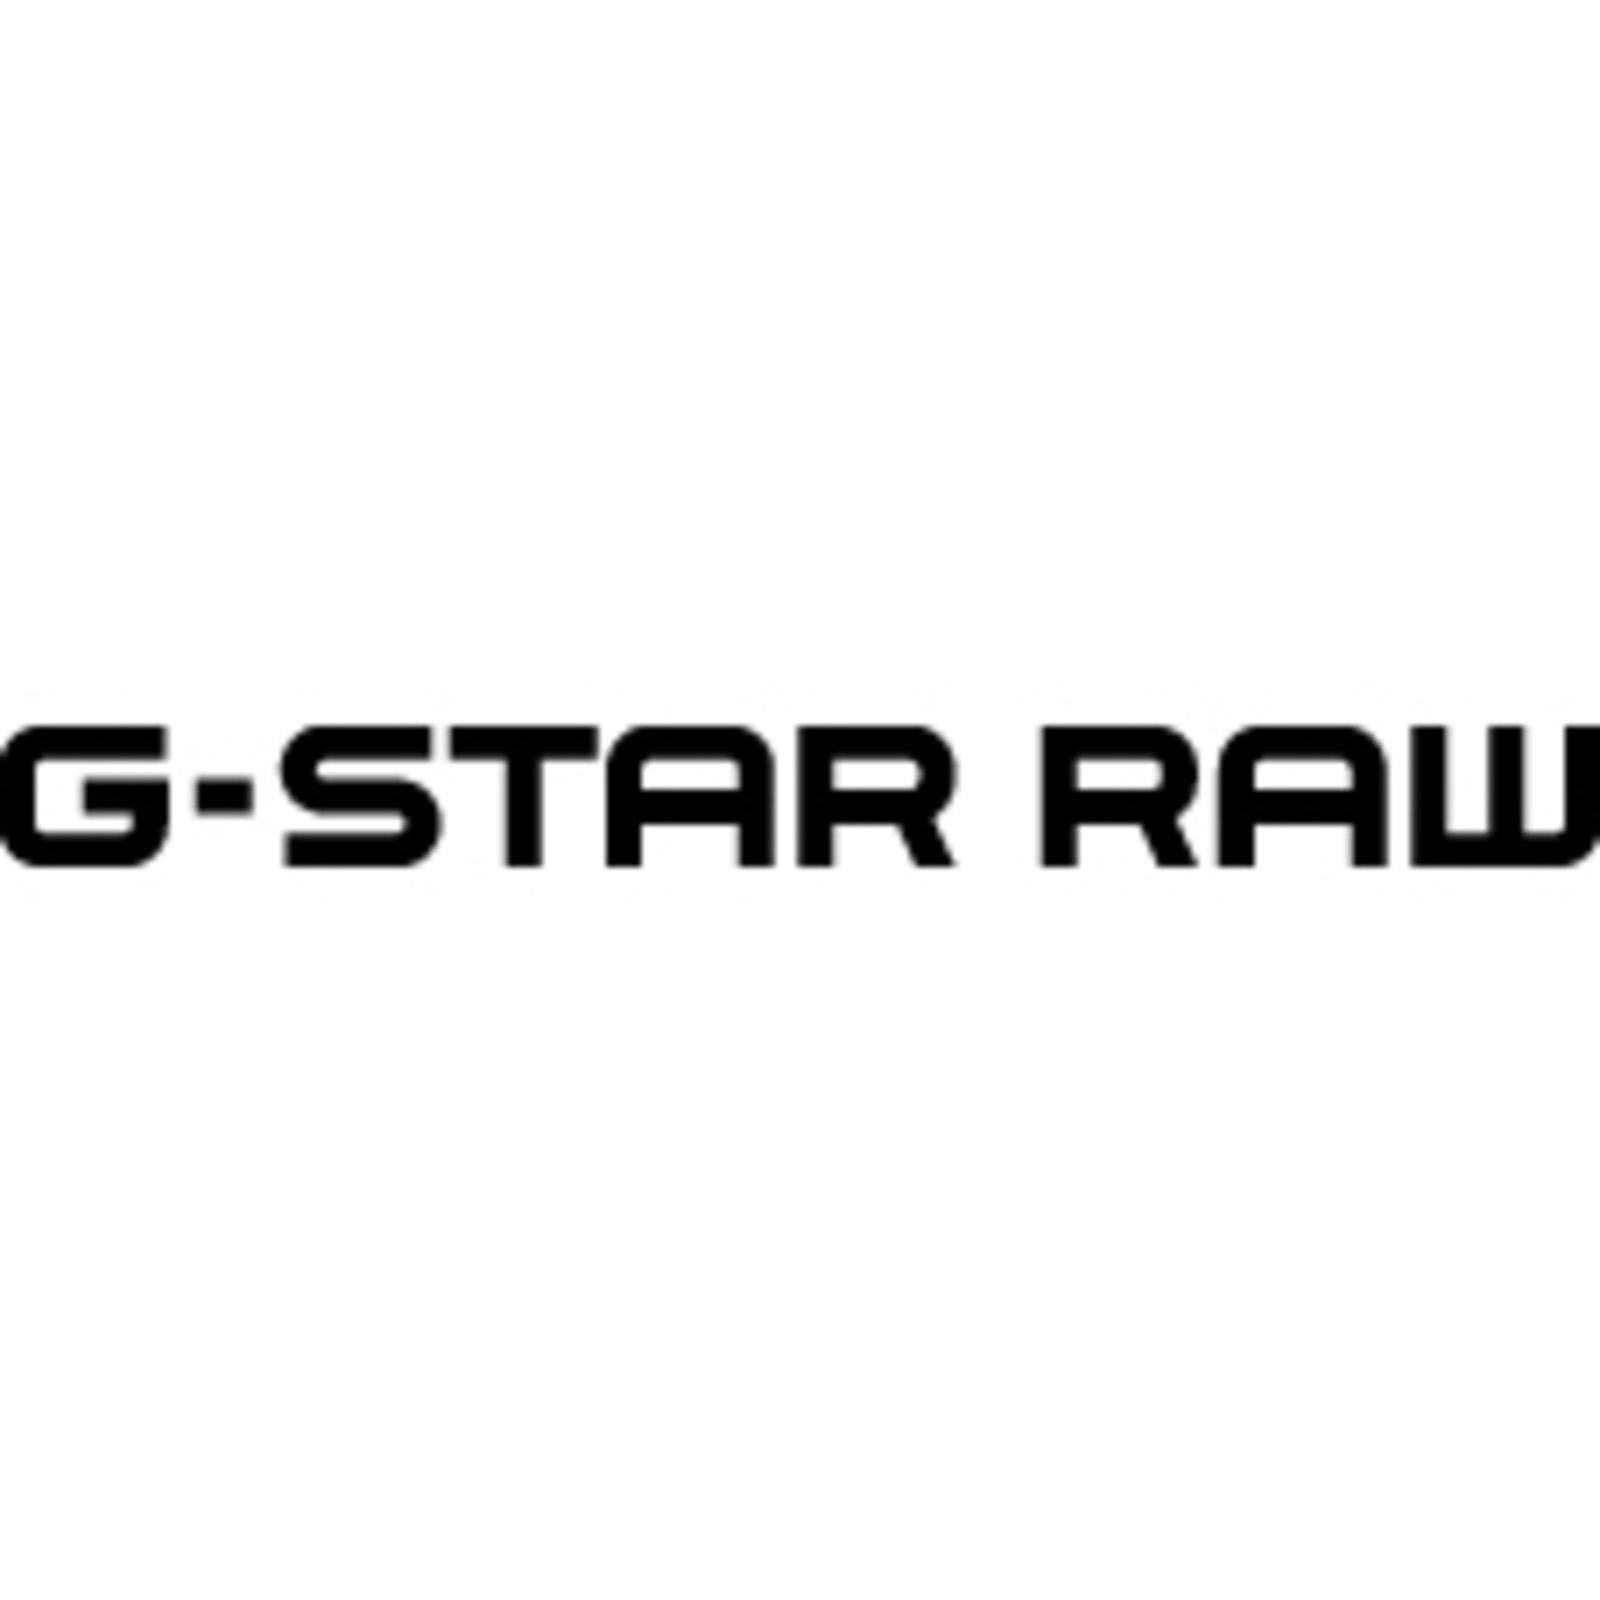 G-STAR RAW FOOTWEAR (Image 1)